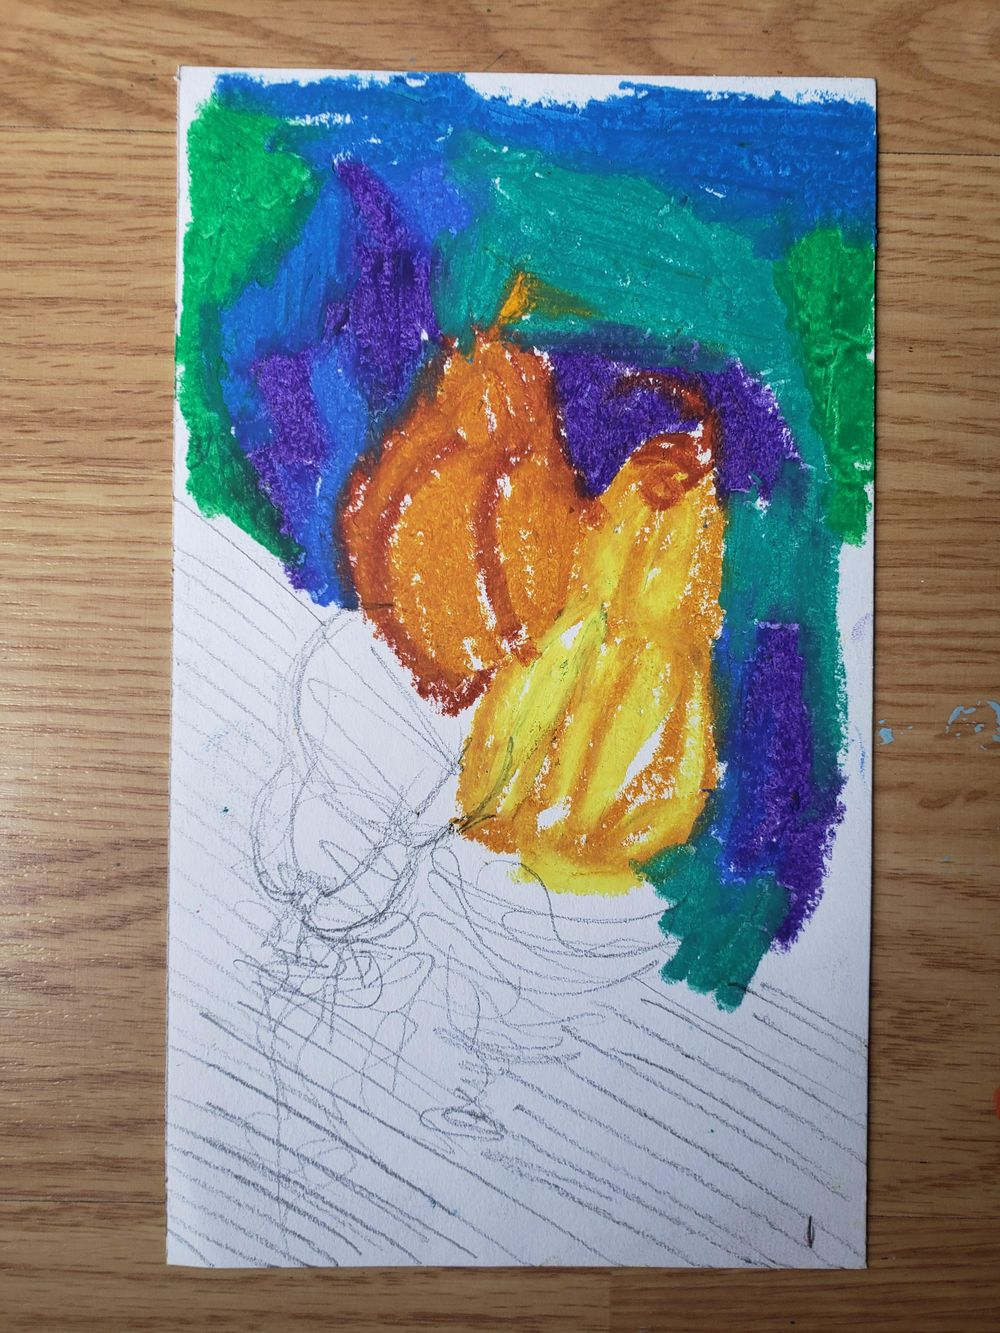 Butternut Squash - image 1 - student project